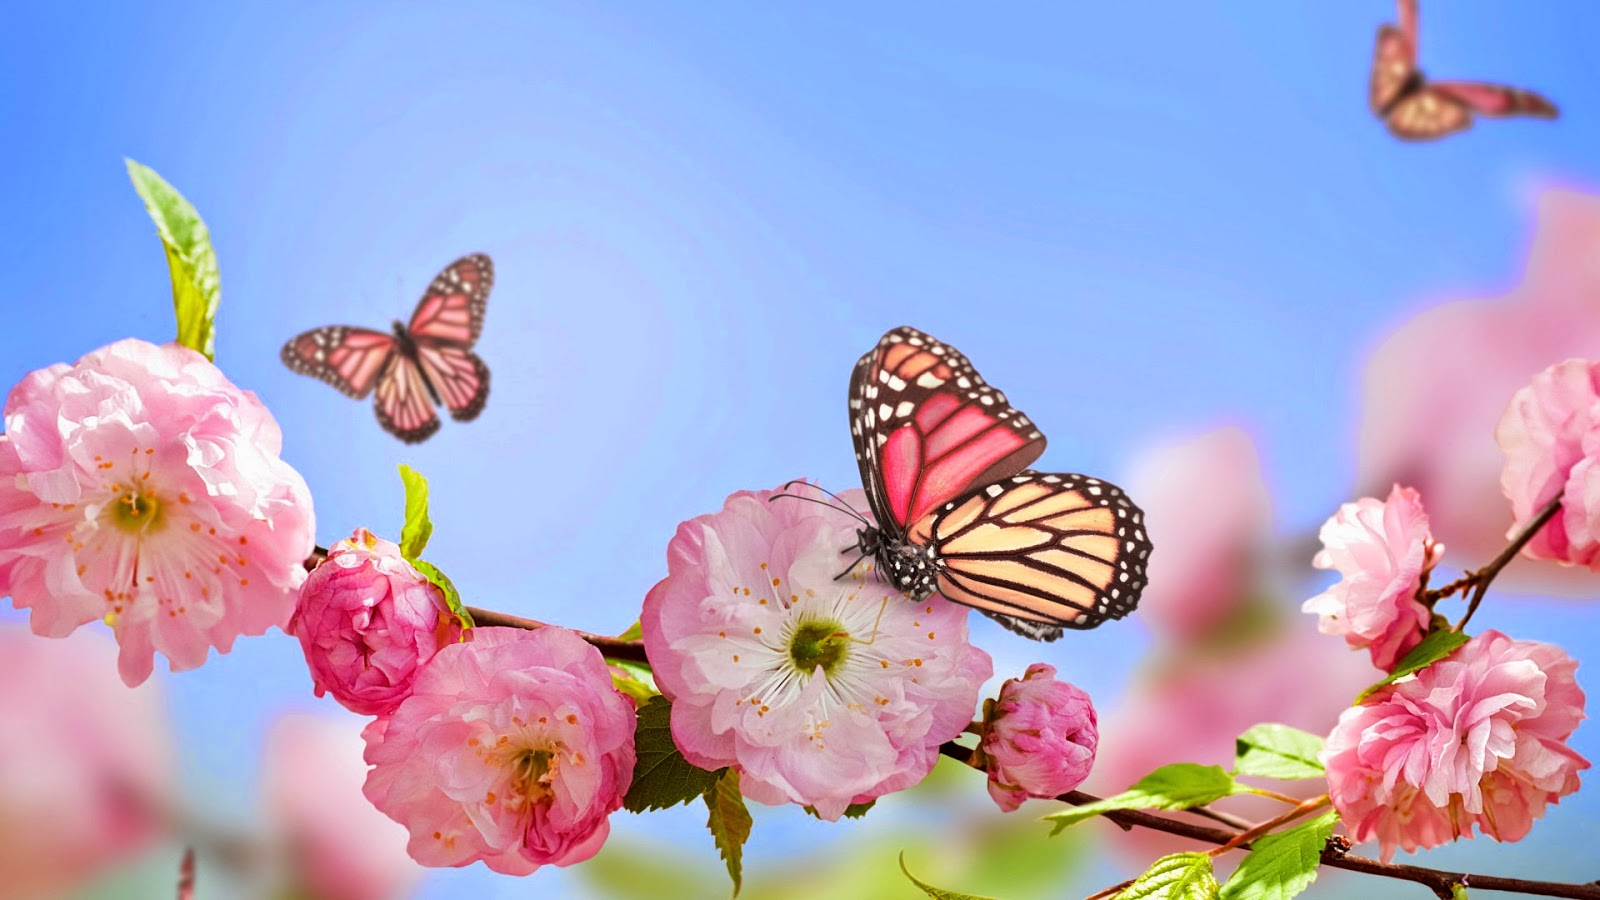 List Of Synonyms And Antonyms Of The Word Hermosas Flores Con Mariposas